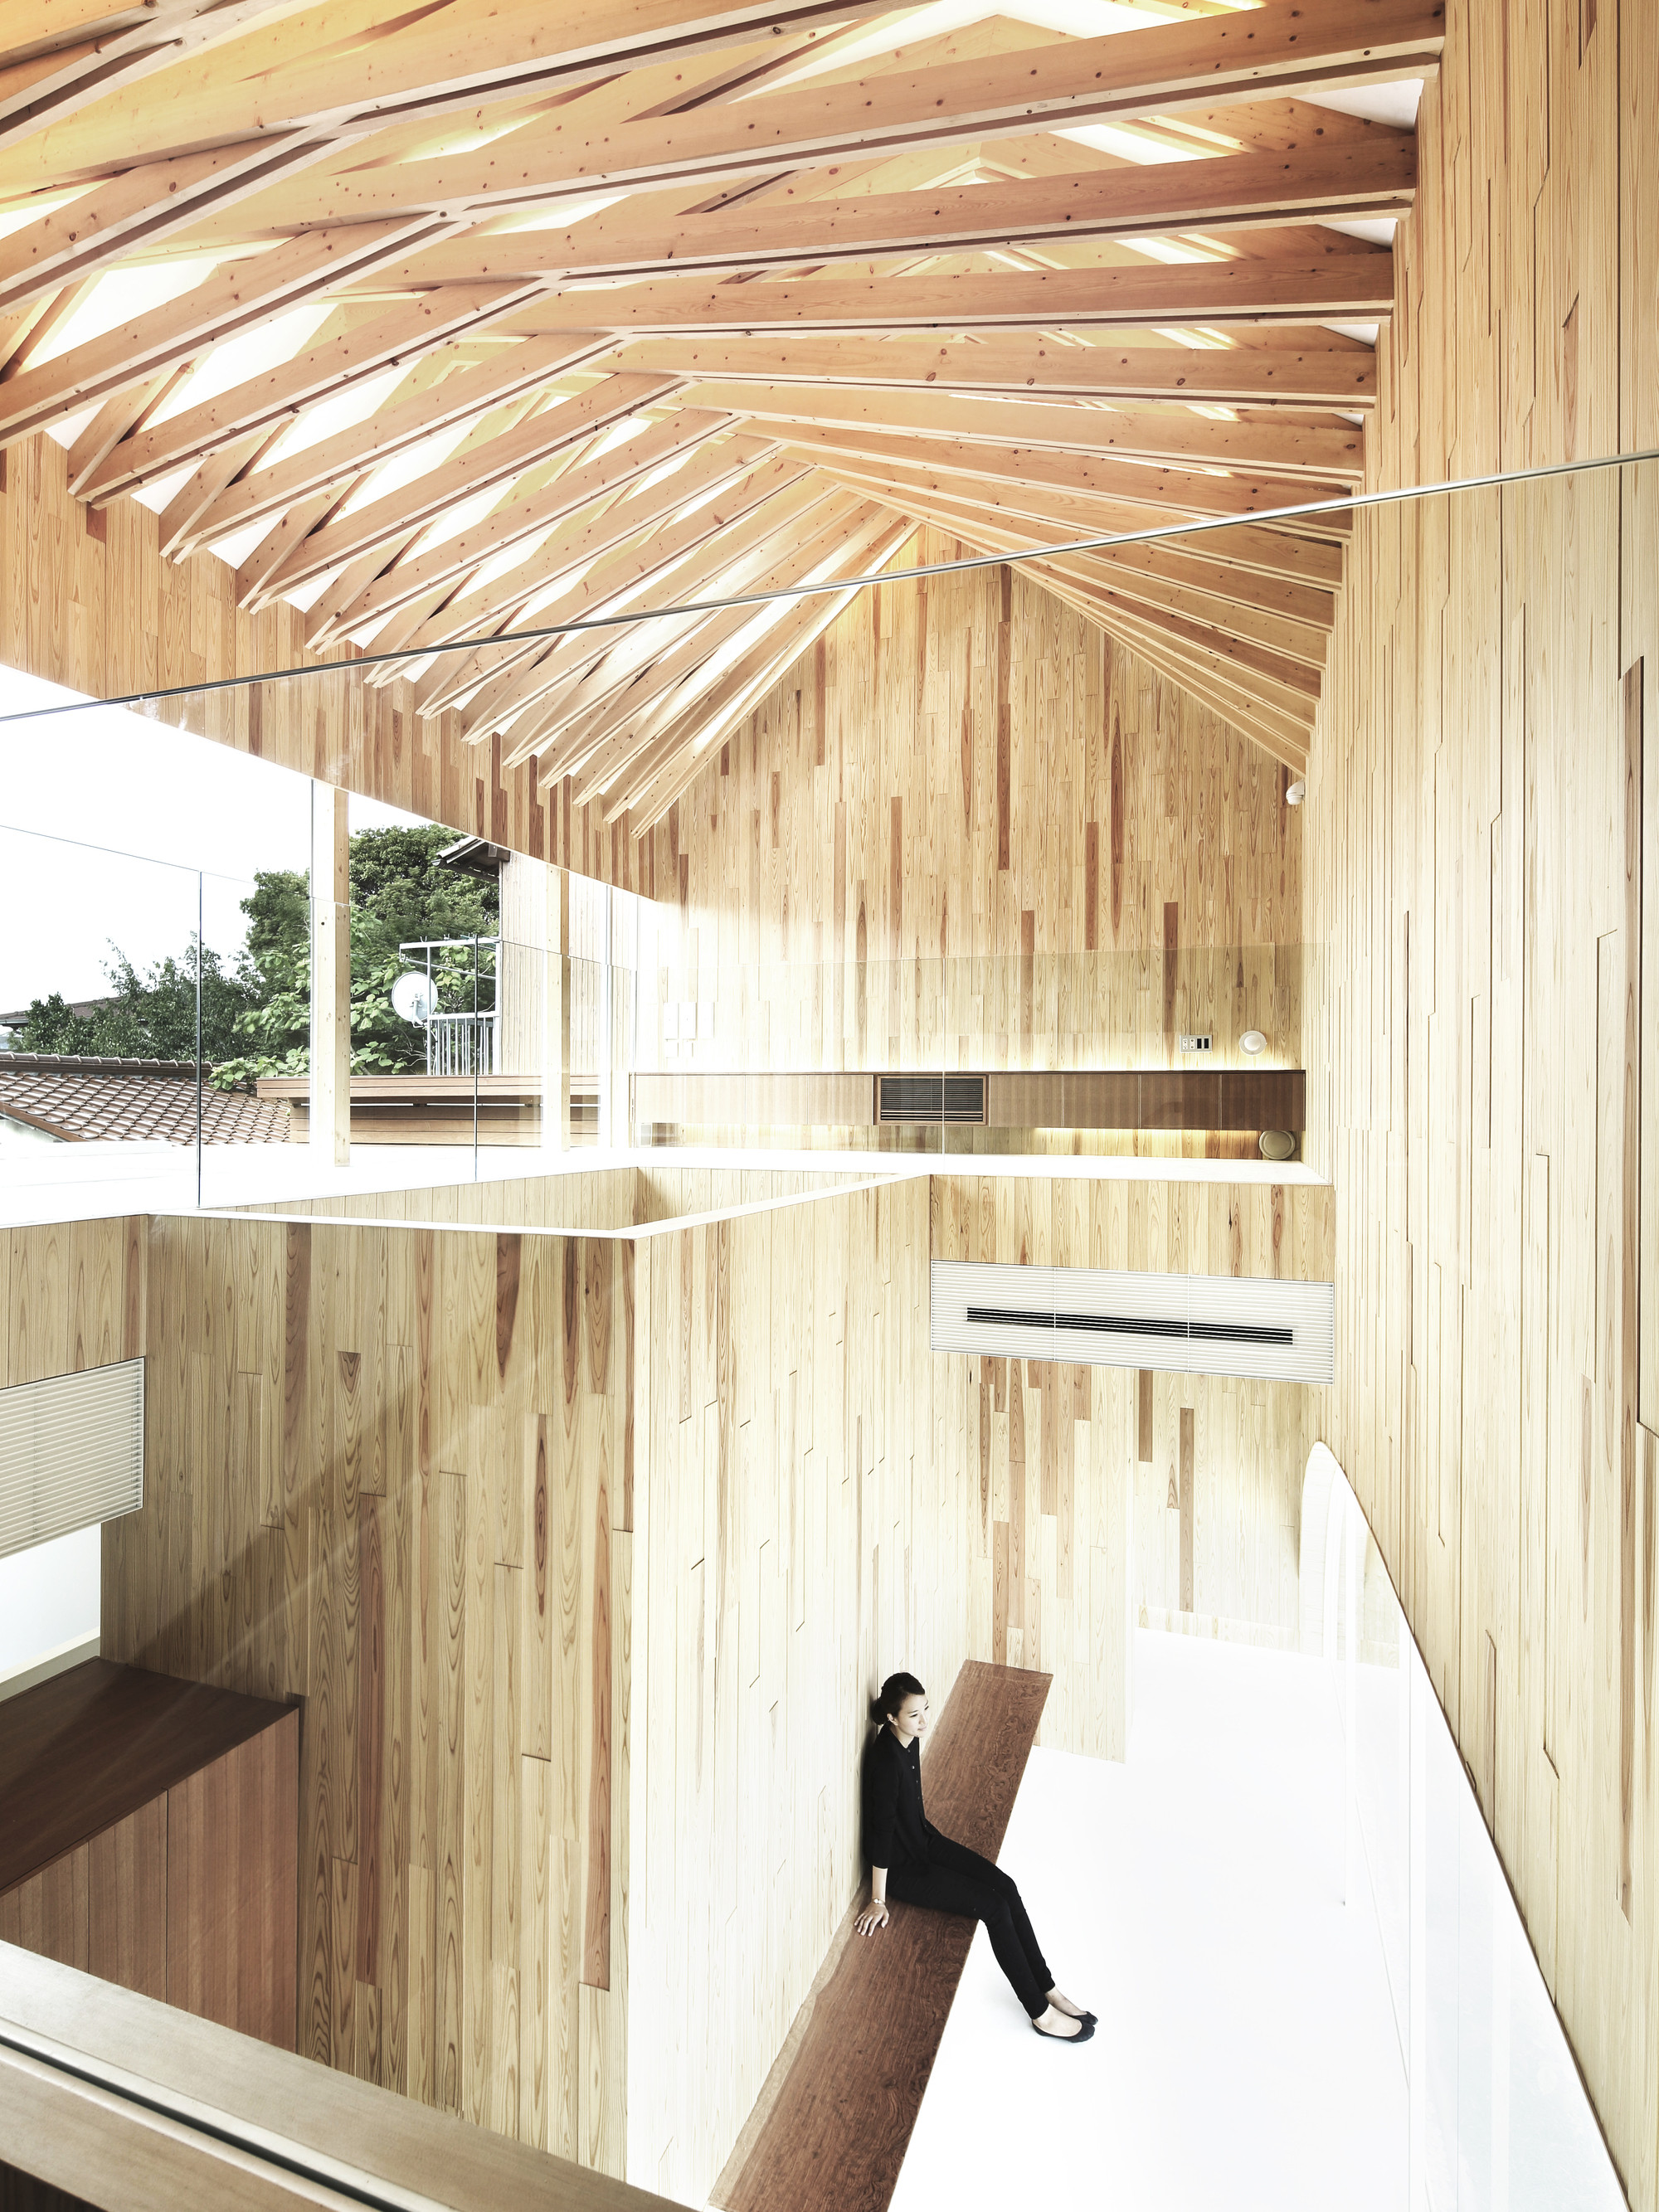 Frame Pool Ideen Study Shows That Timber Buildings Cost Less To Build